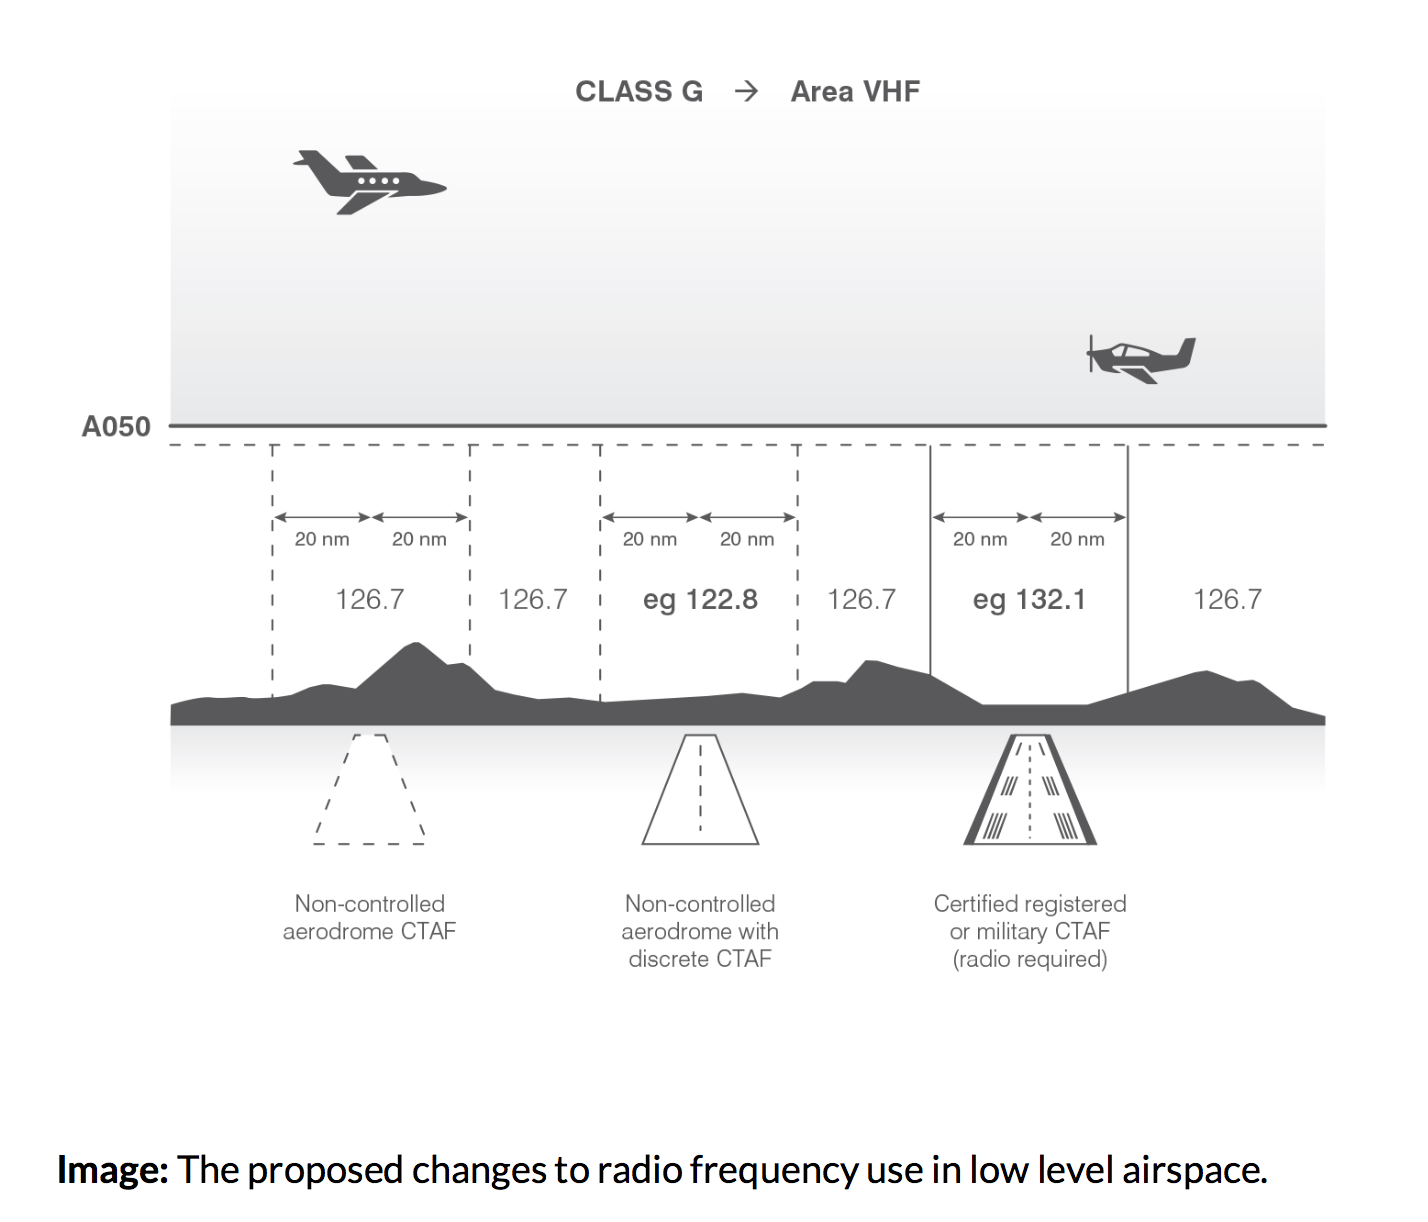 HGFA response - CASA Proposal - Frequency use at low level in Class G airspace